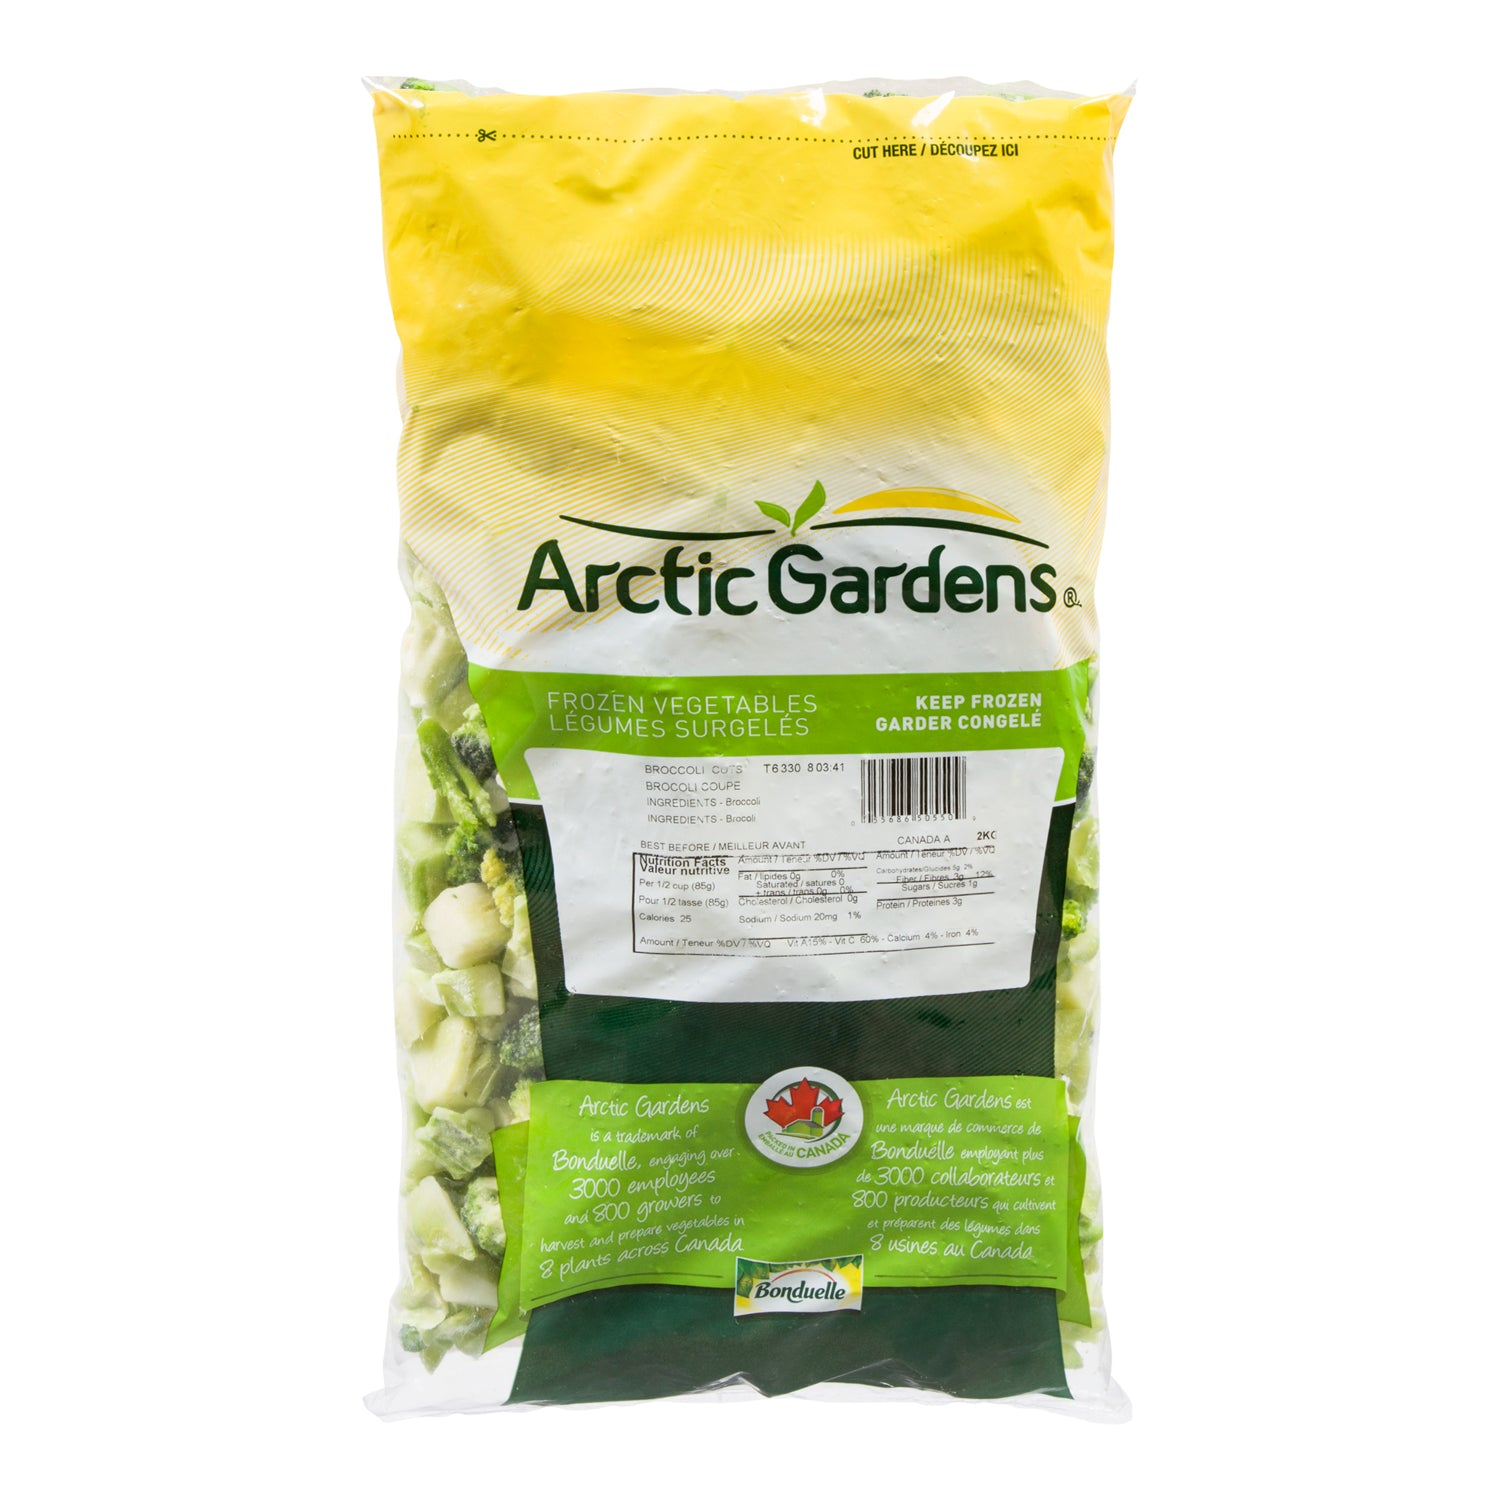 Arctic Garden Frozen Cut Broccoli 2 kg - 6 Pack [$4.50/kg]